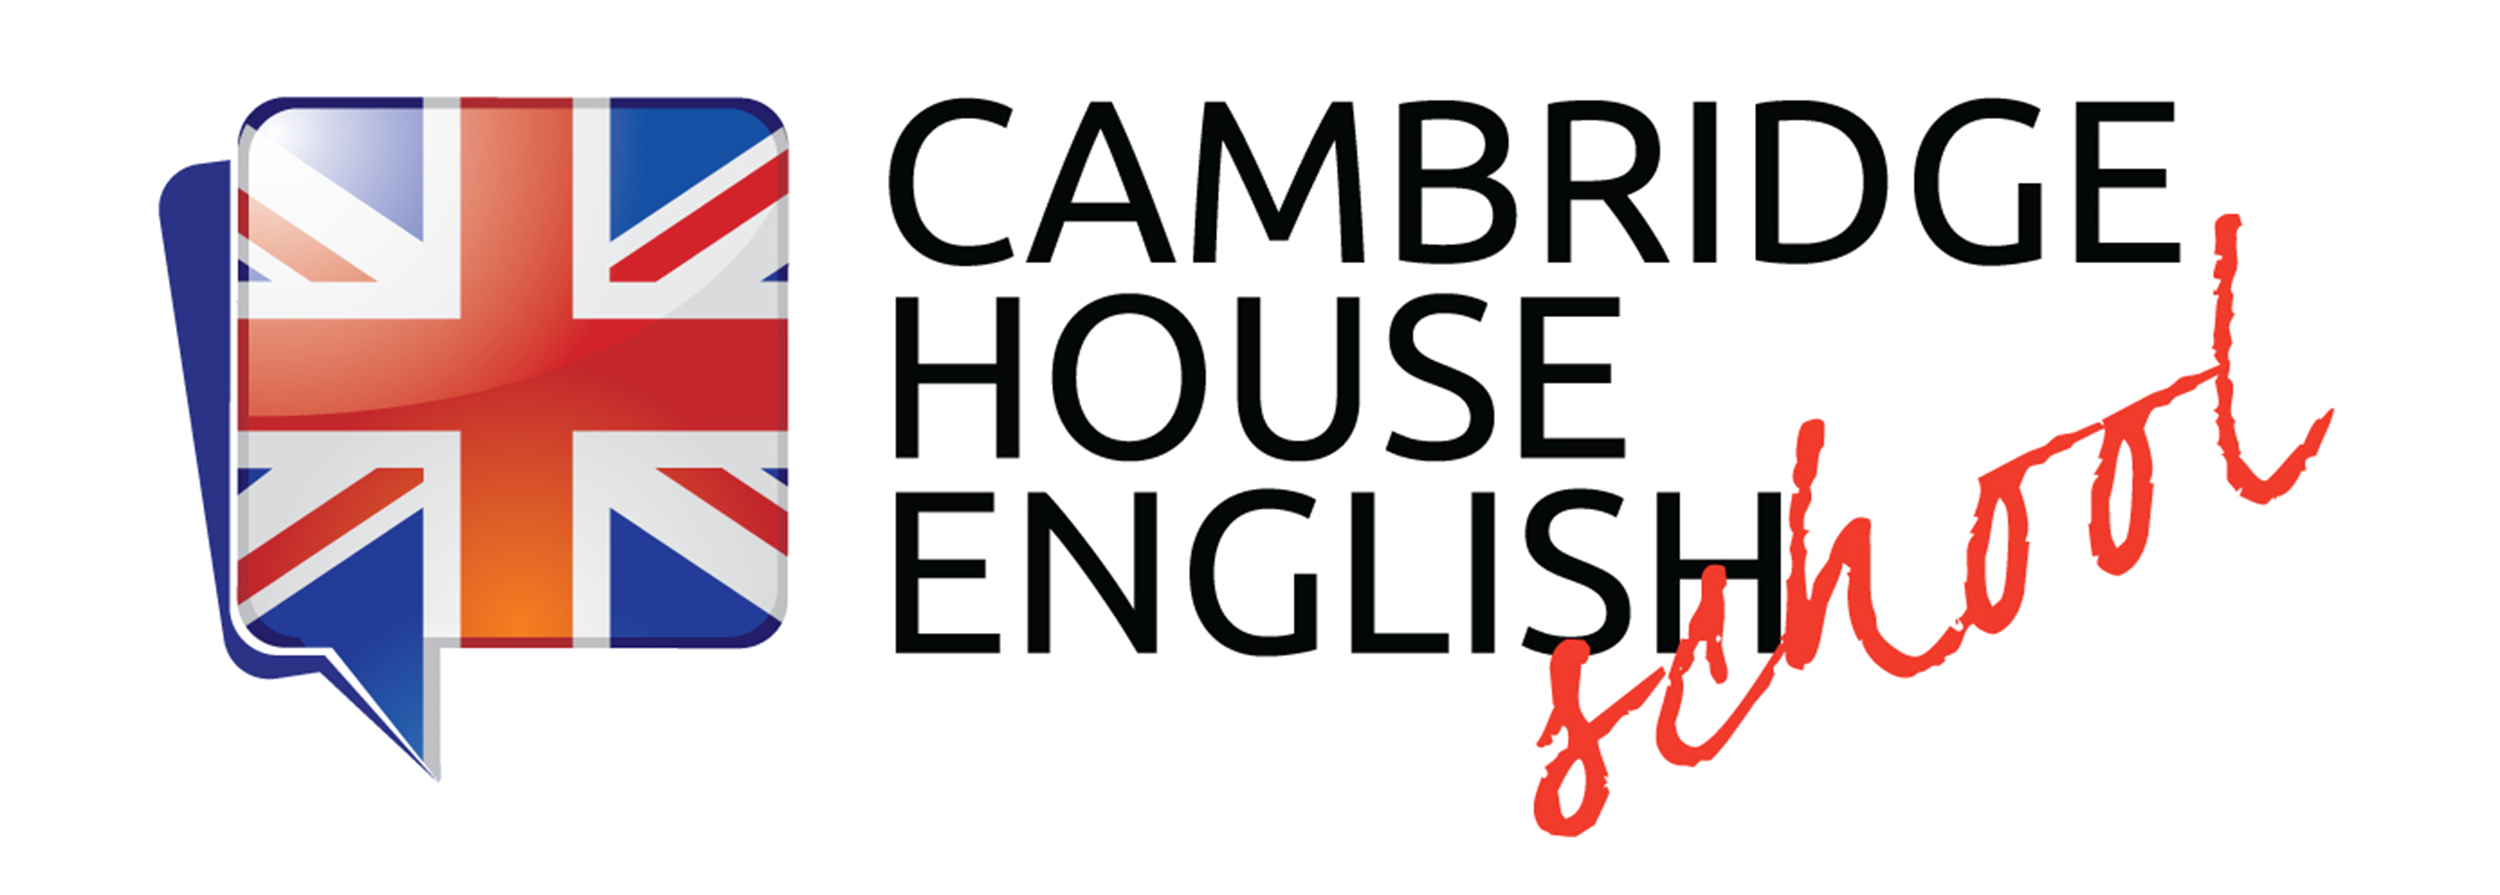 Cambridge House English